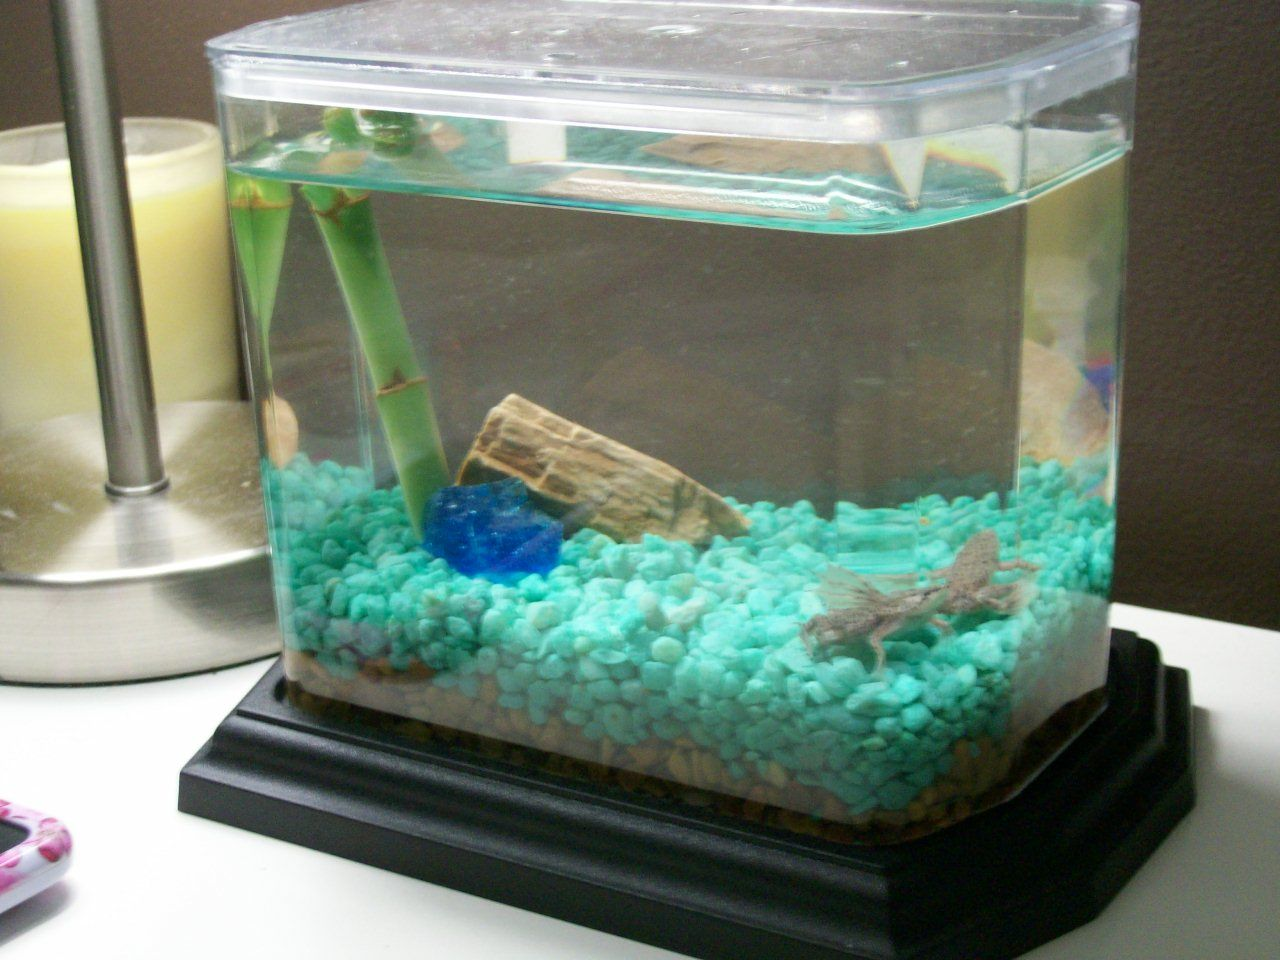 Cute little eco aquarium from wild creations company for Cute fish tanks